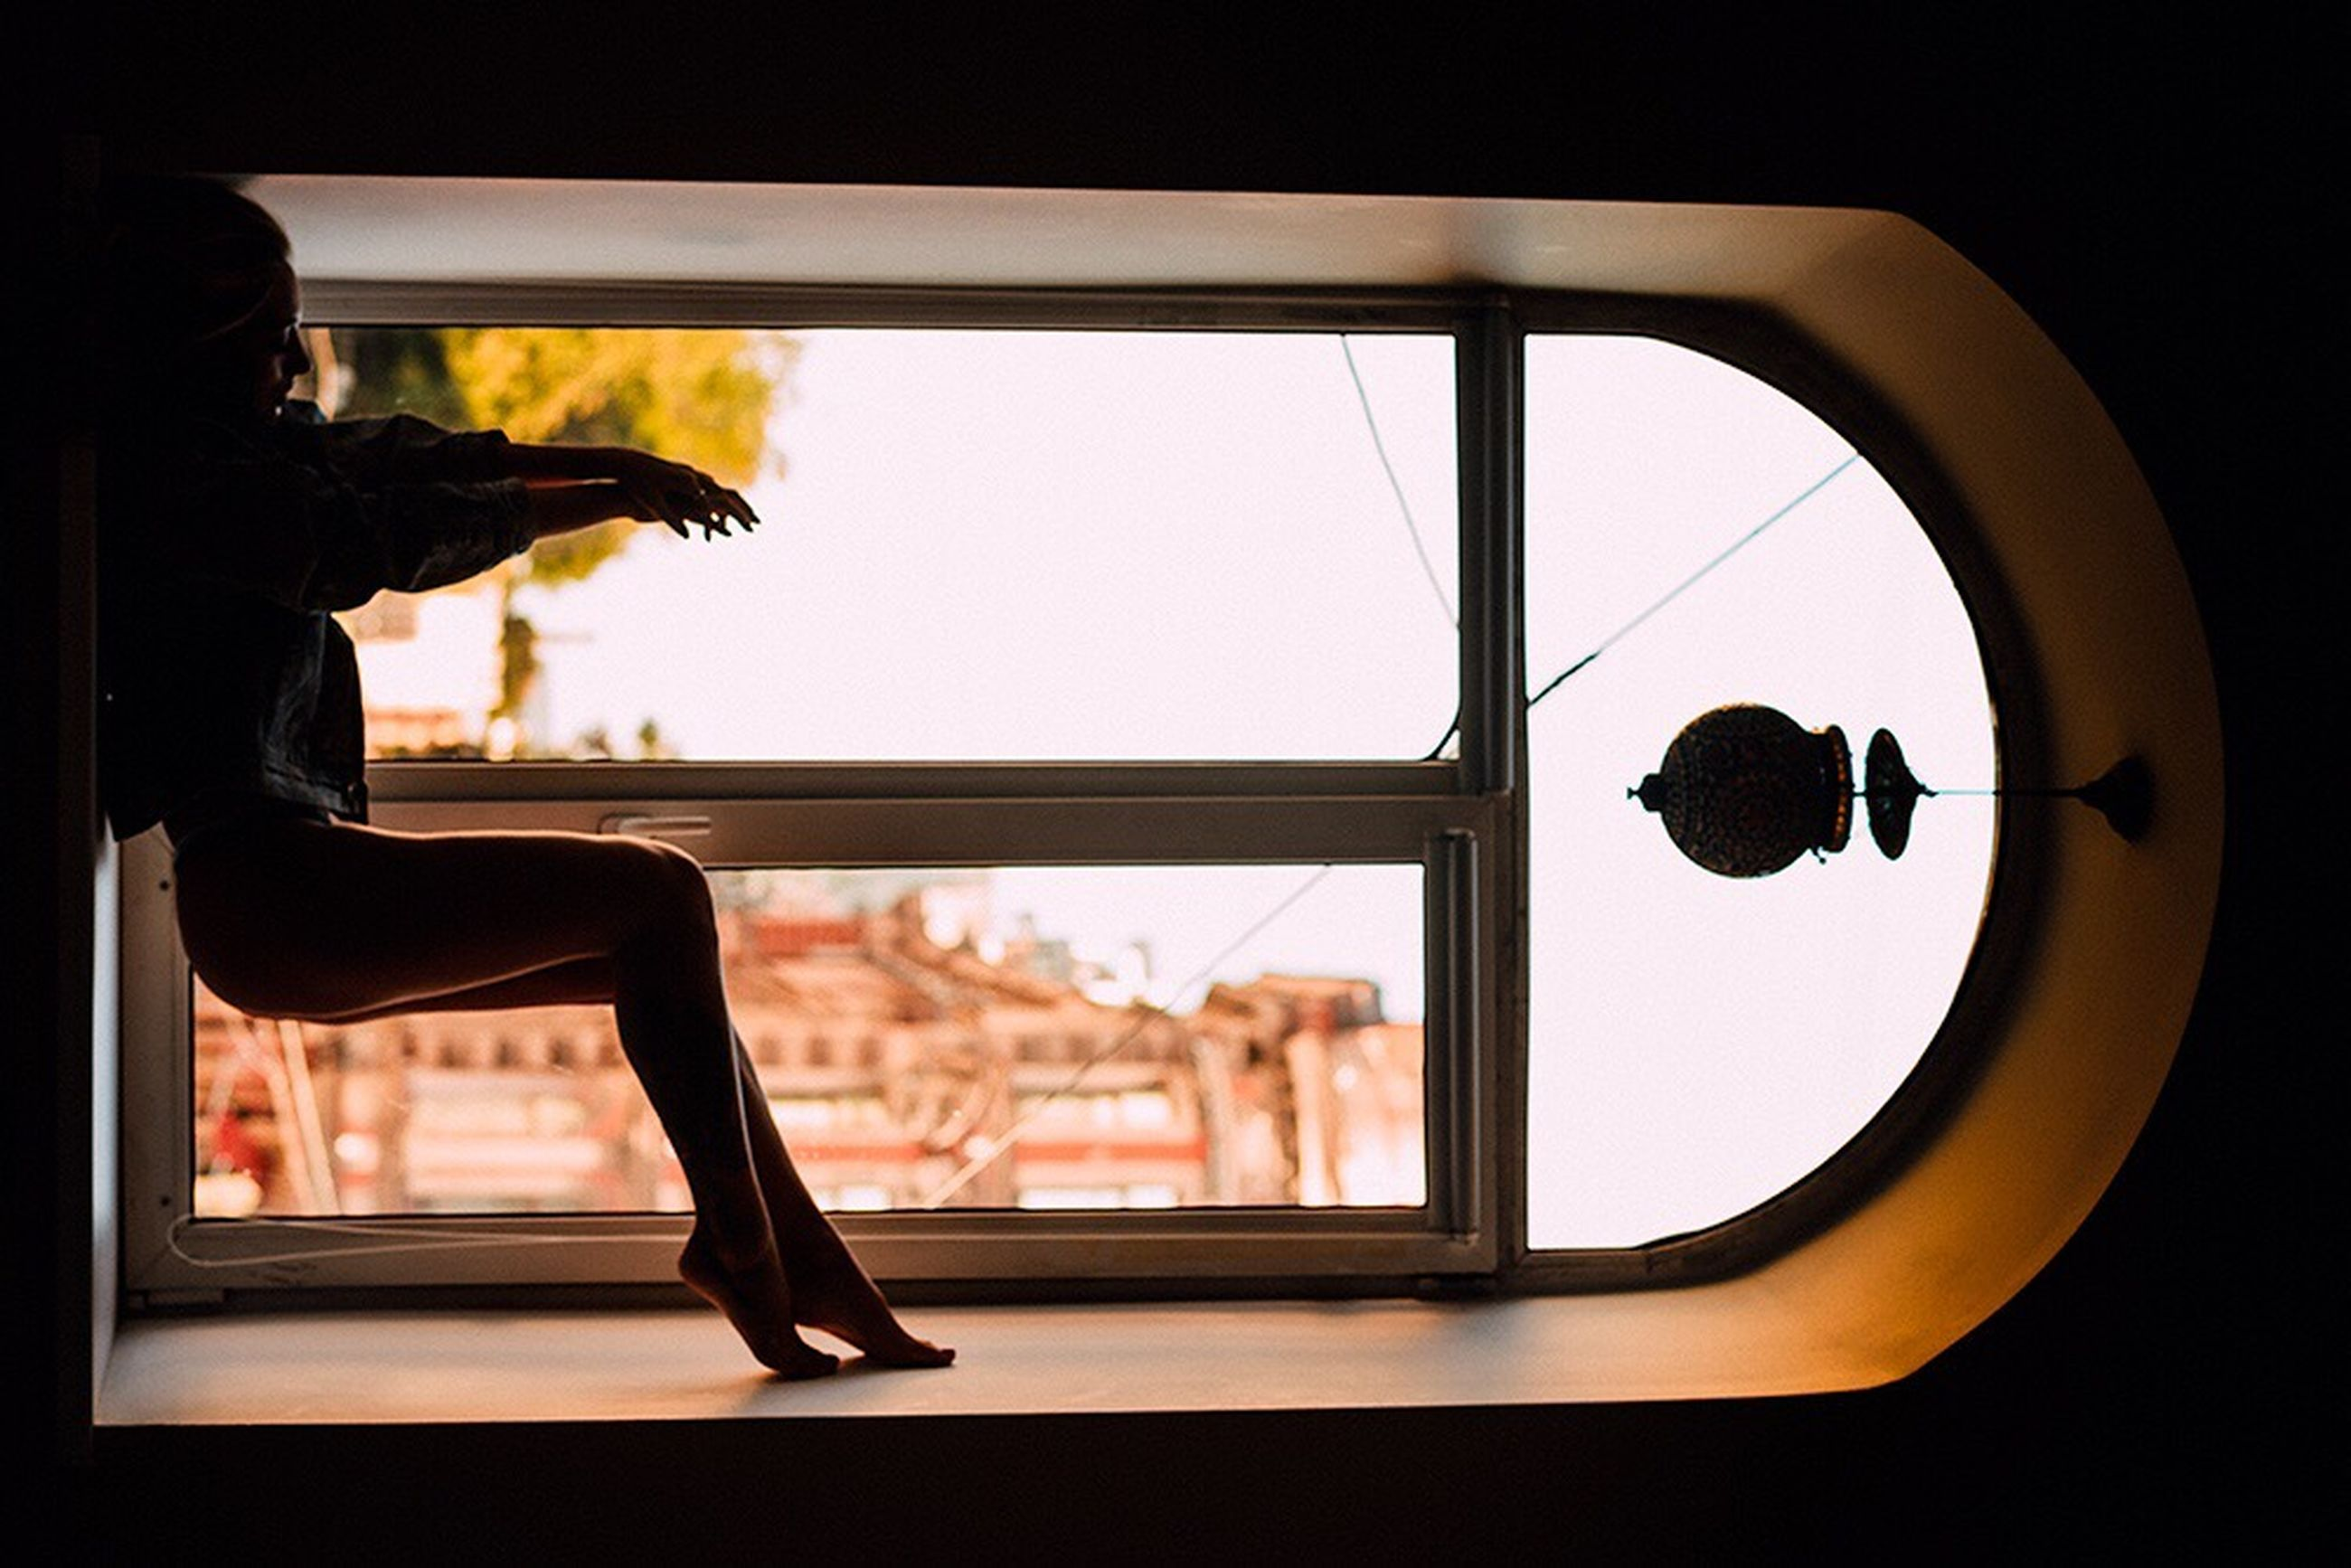 window, indoors, silhouette, looking through window, one person, real people, reflection, day, women, close-up, sky, people